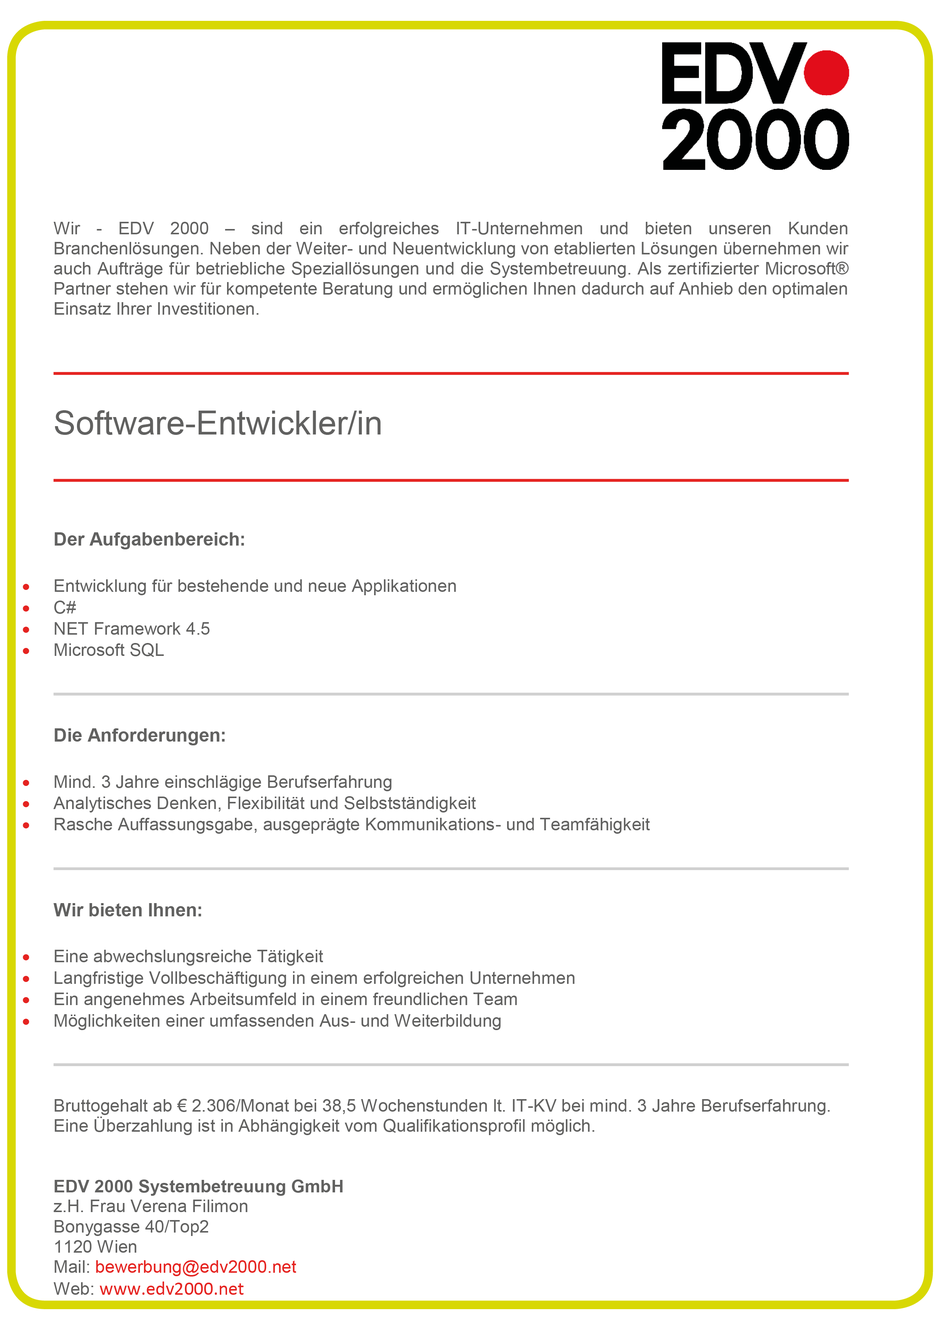 Software Developer Jobs - Softwareentwickler - EDV2000 - Wien - 1